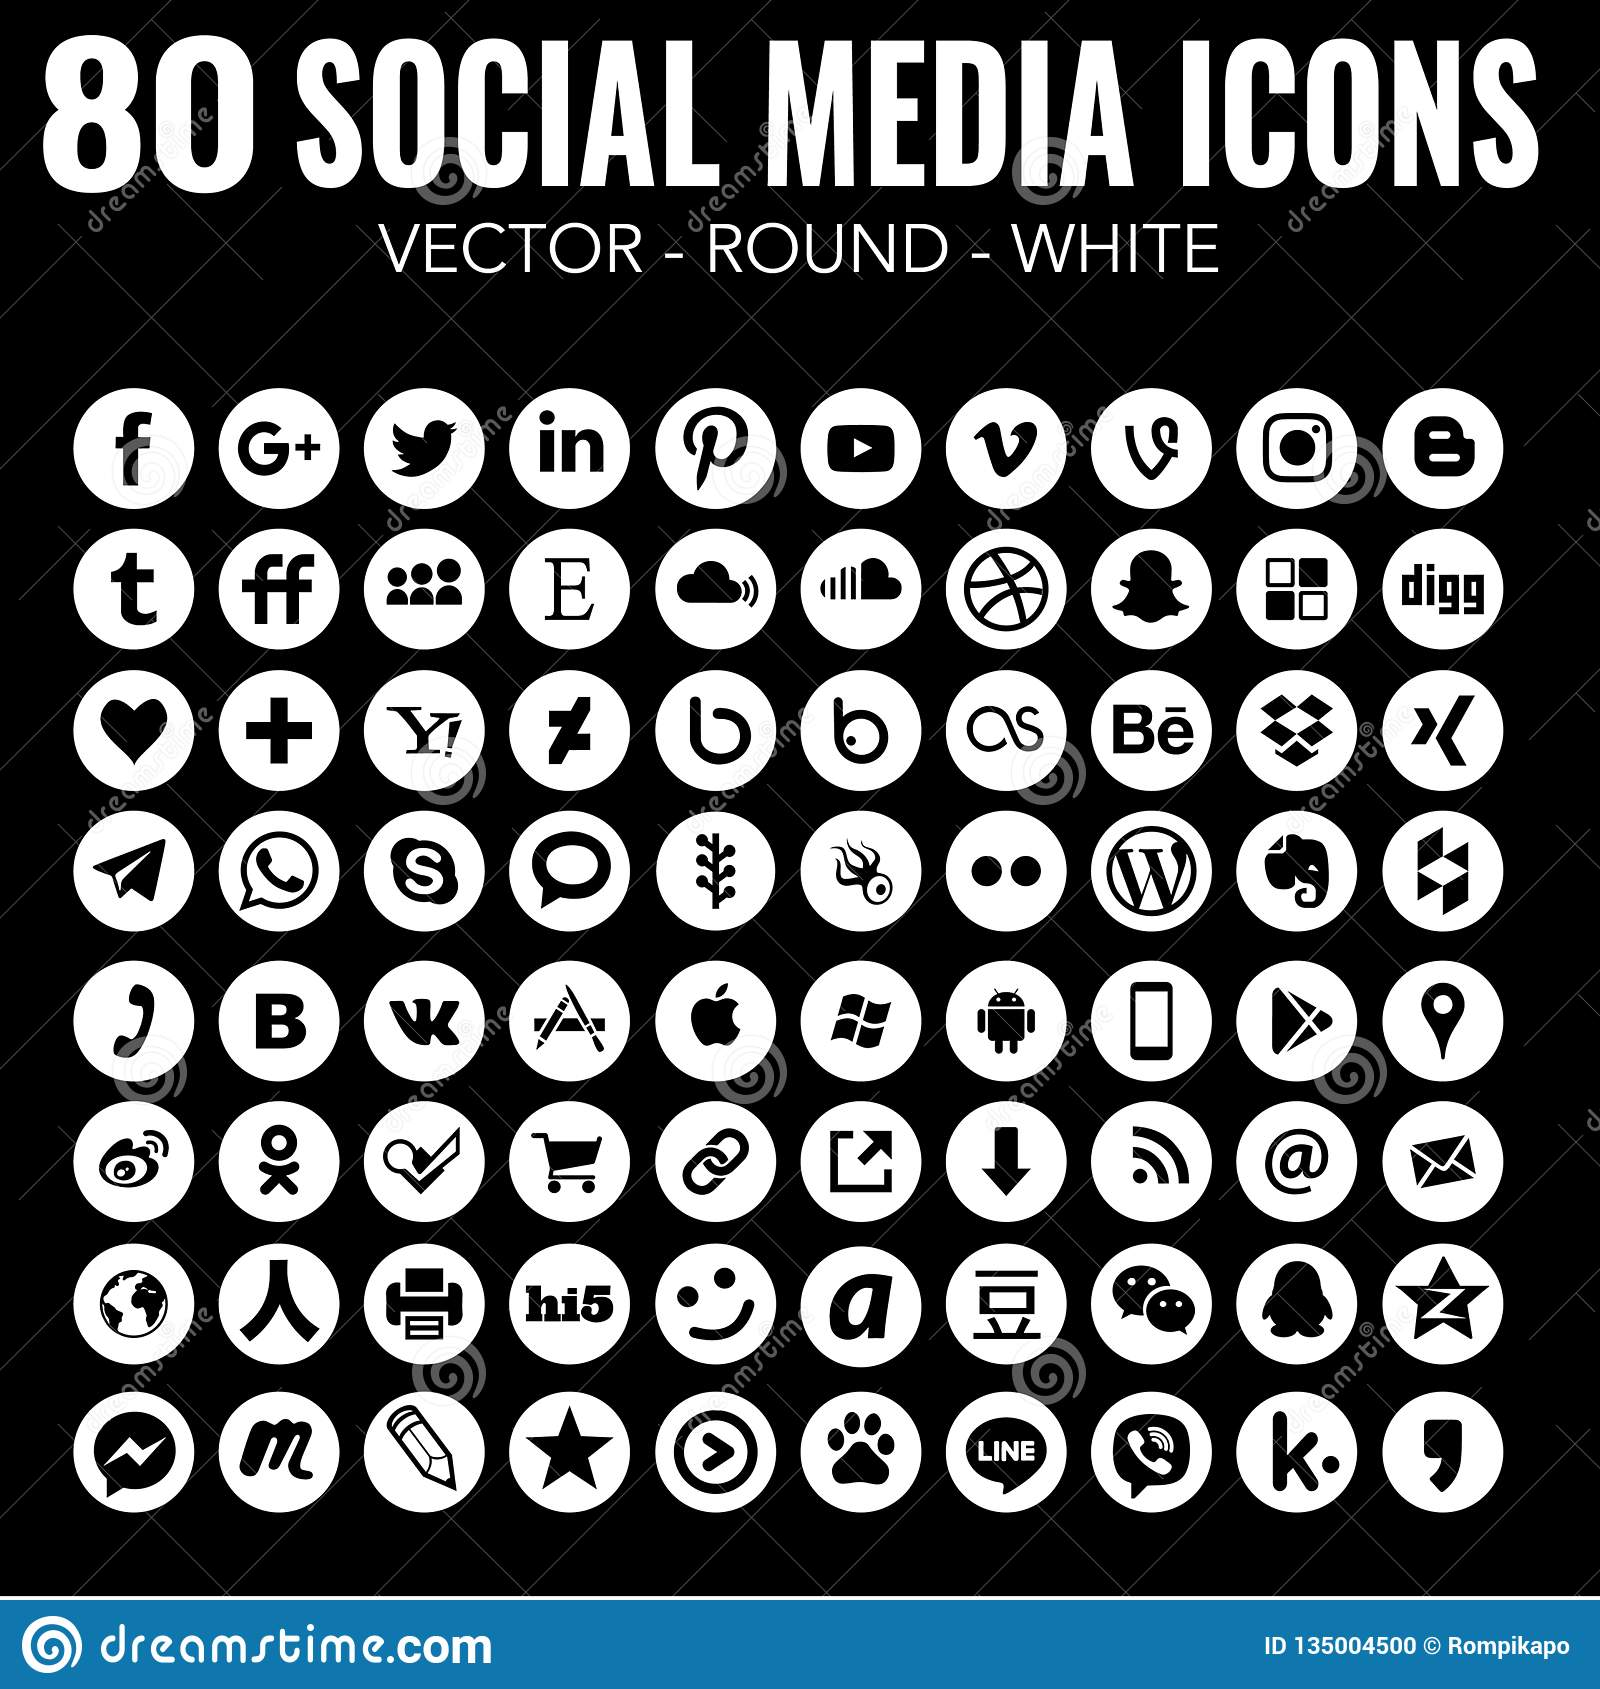 80 Vector Round White Social Media Icons For Graphic Design And Web Design Editorial Image Illustration Of Email Interface 135004500